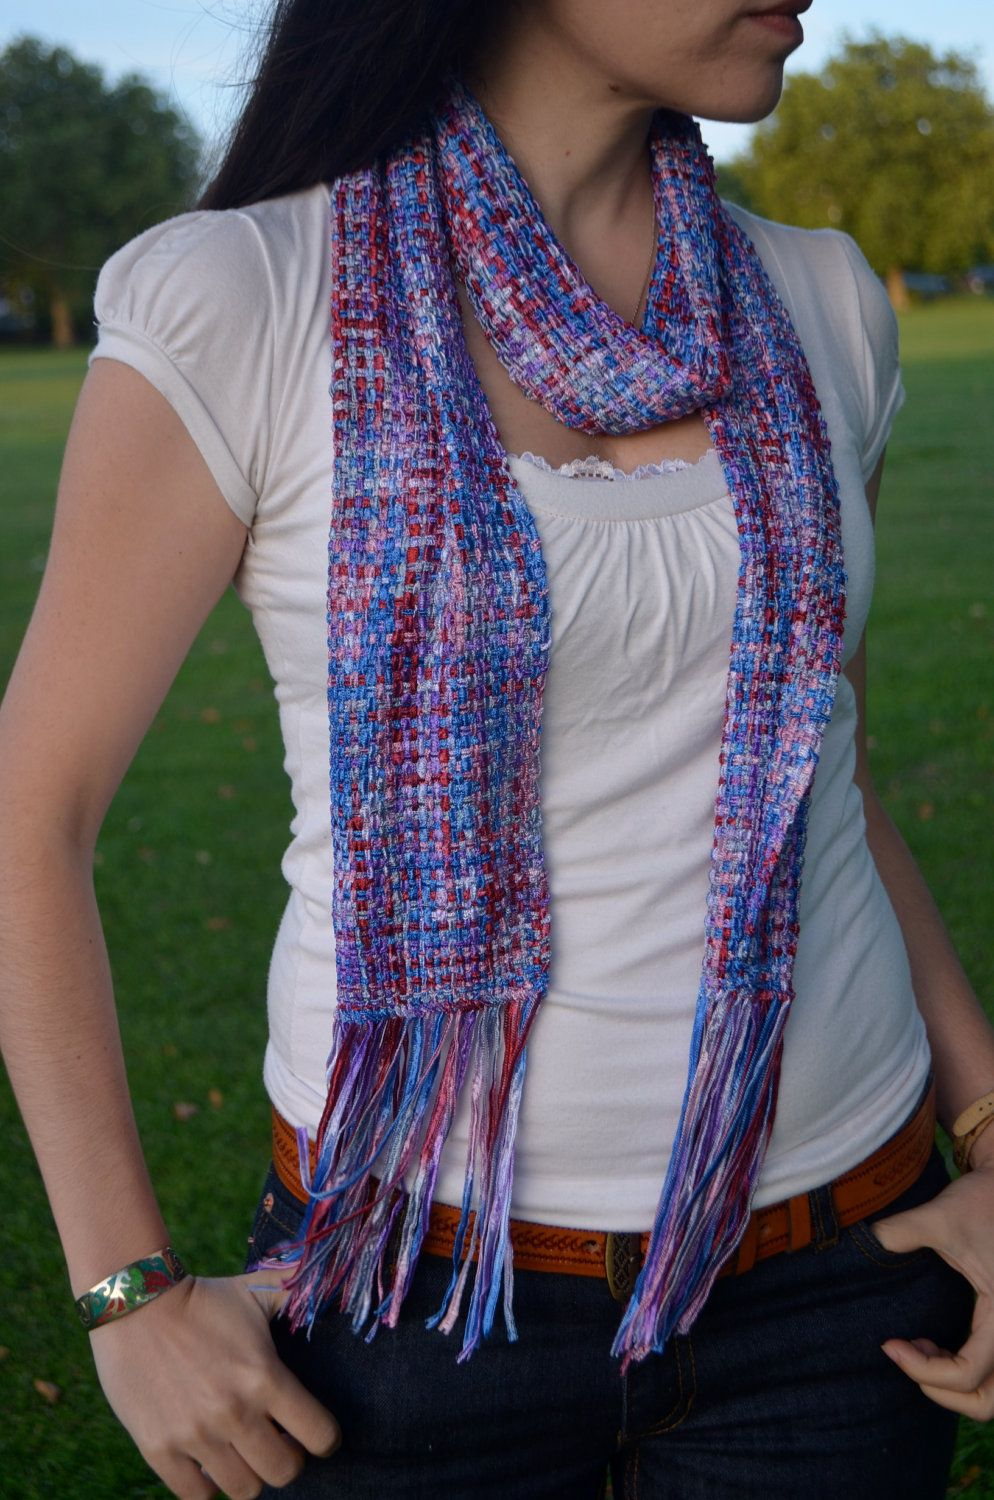 Weaving with thin ribbons - lovely idea    great result